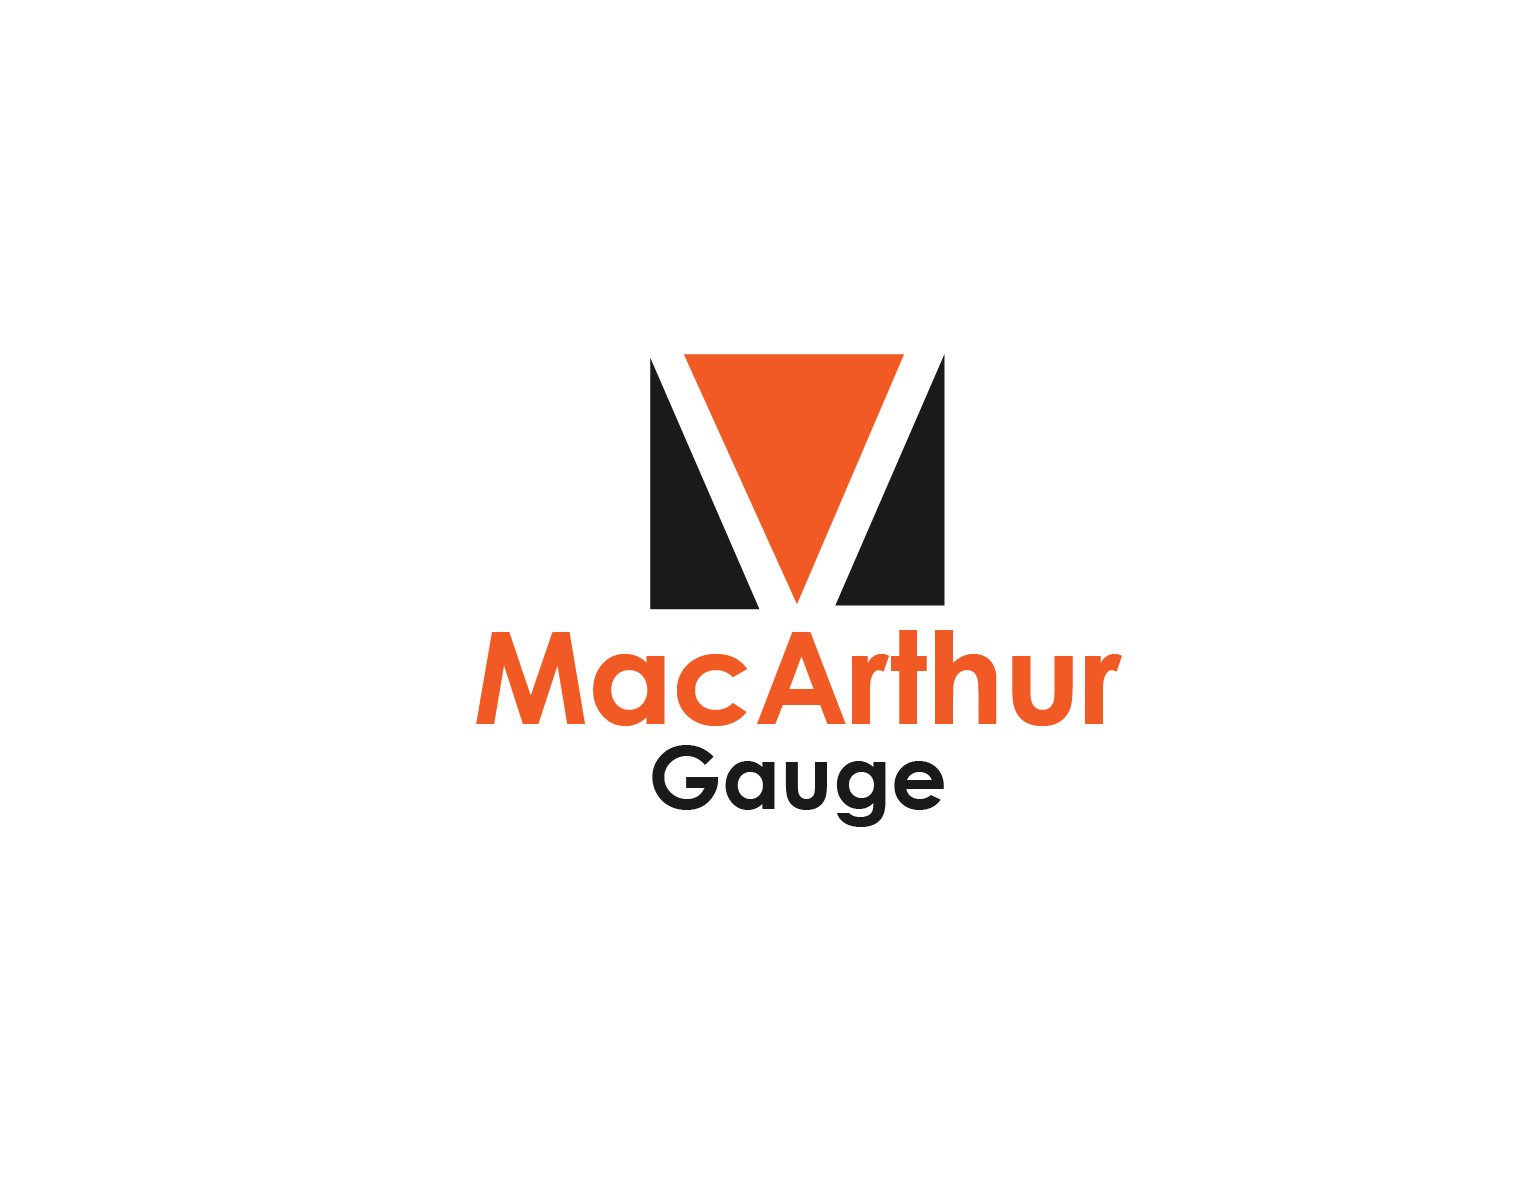 Logo Design by 3draw - Entry No. 166 in the Logo Design Contest Fun Logo Design for MacArthur Gauge.